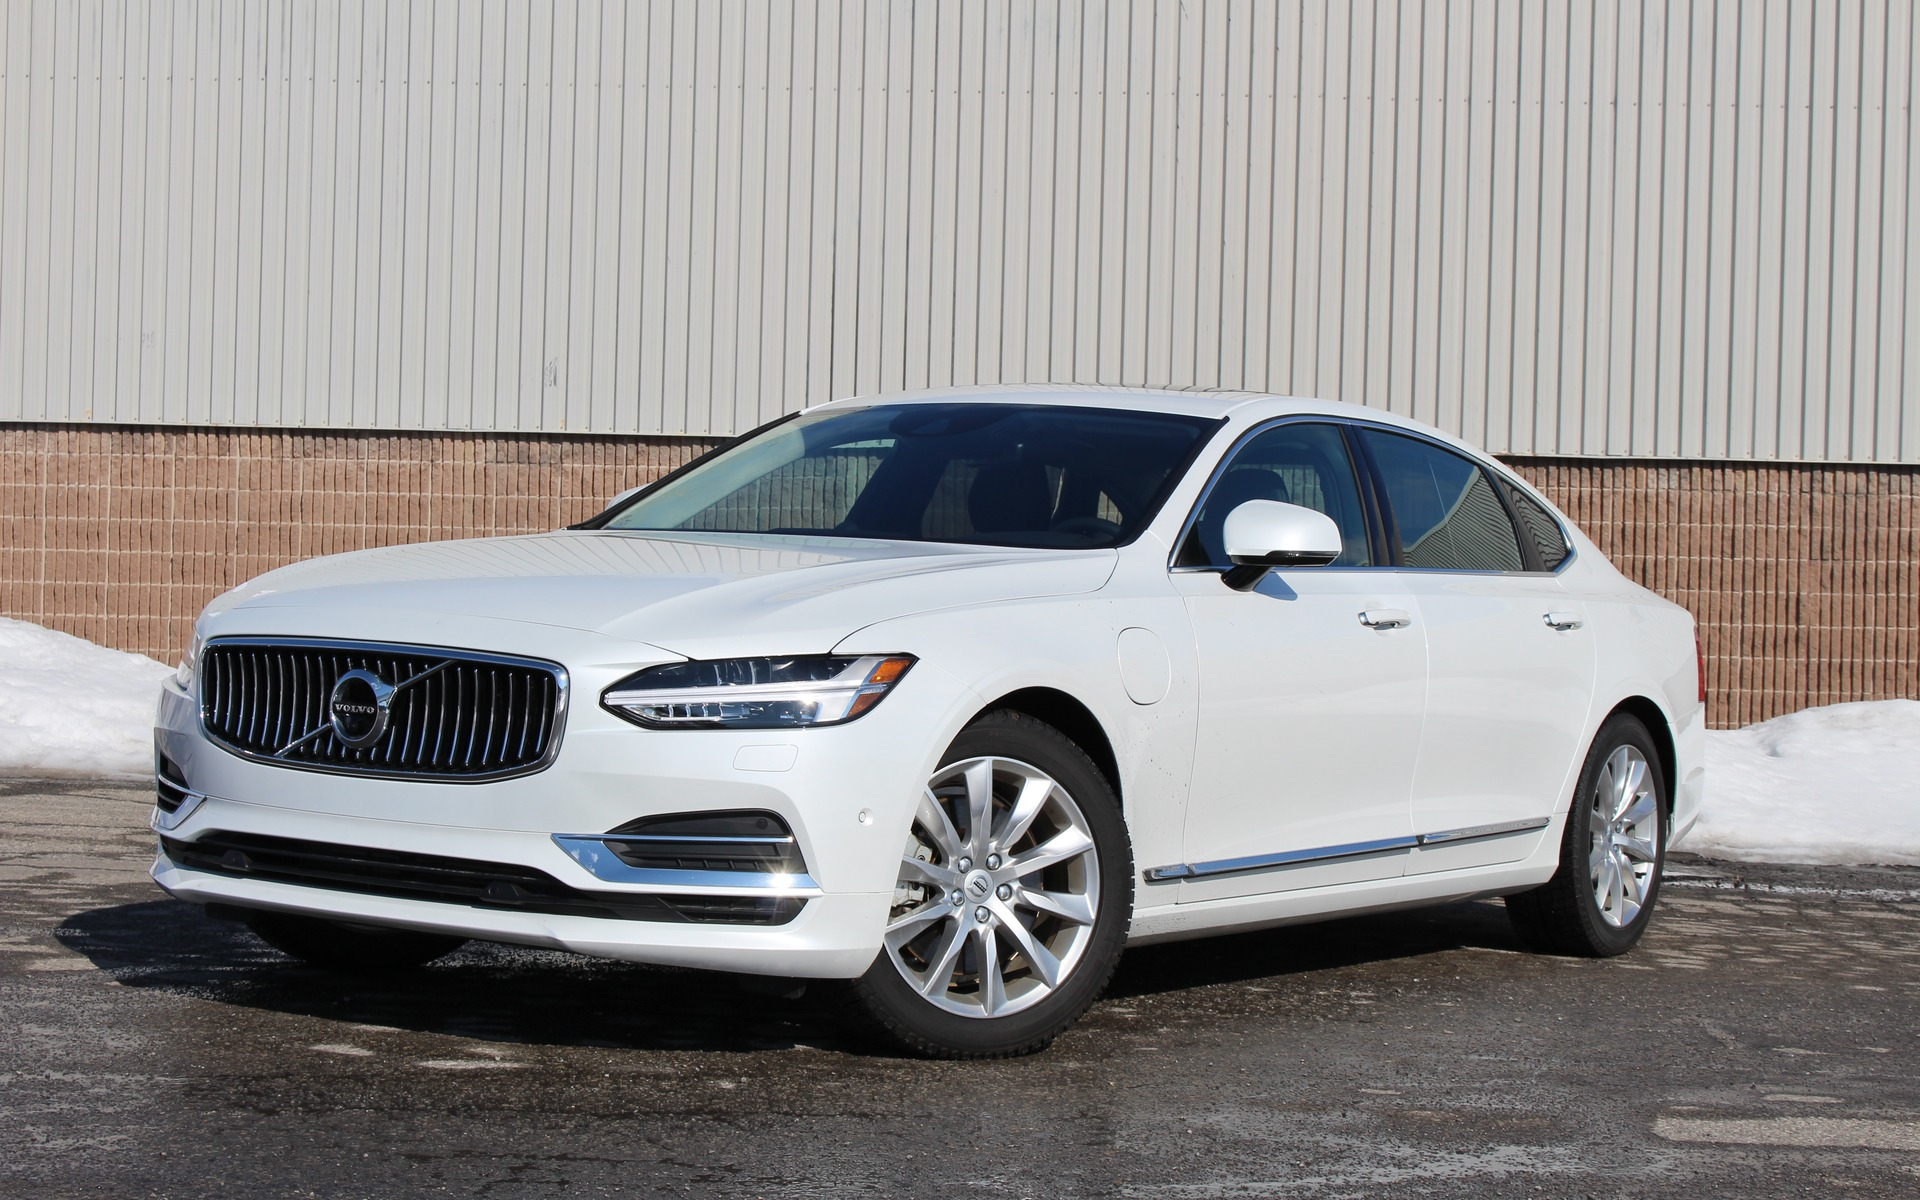 2018 Volvo S90 T8 Eawd Excellence By Design The Car Guide